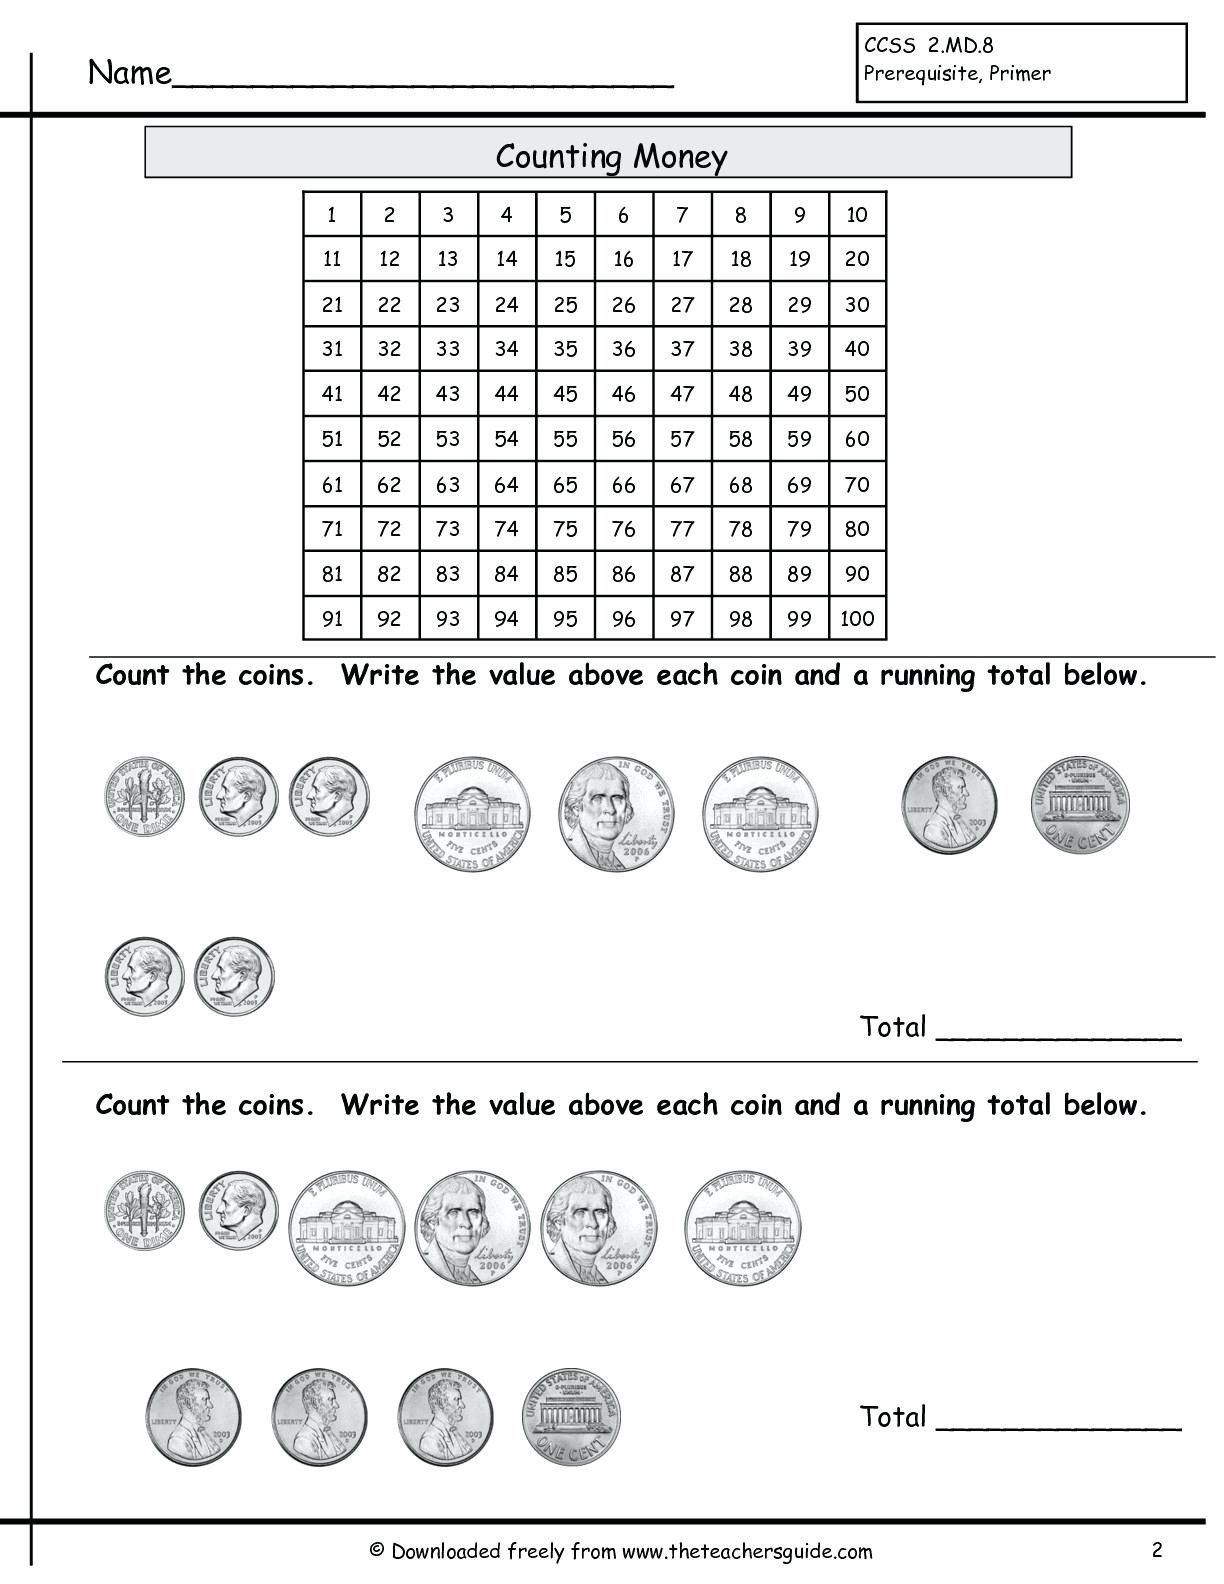 5 Free Math Worksheets Second Grade 2 Counting Money Money Words To Numbers 3 Free Math Wor In 2020 Free Math Worksheets Math Worksheets Free Printable Math Worksheets [ 1584 x 1224 Pixel ]